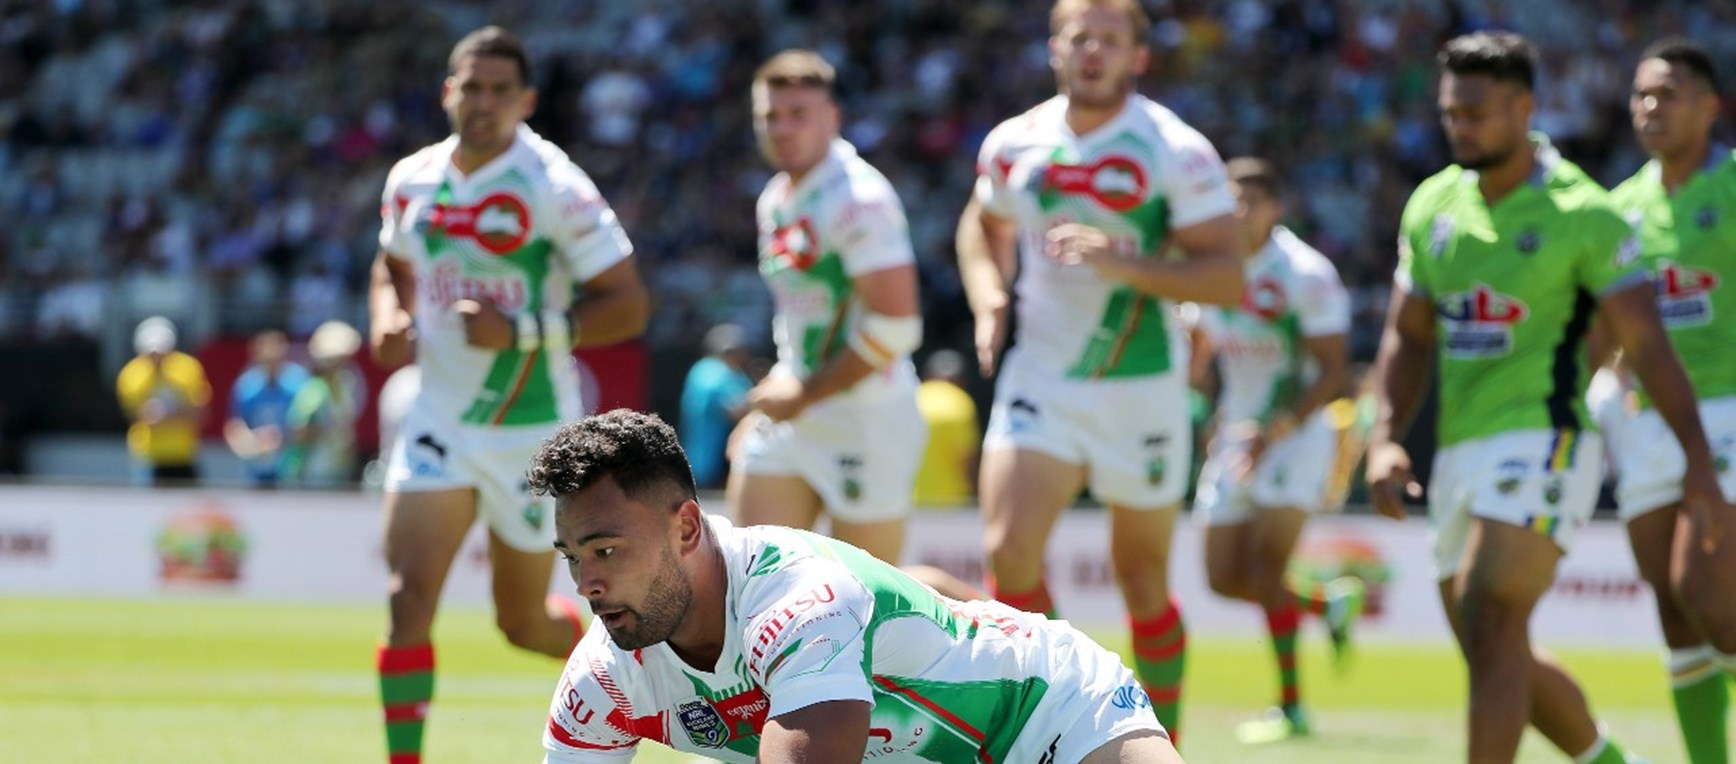 GALLERY: Game 1, Auckland Nines